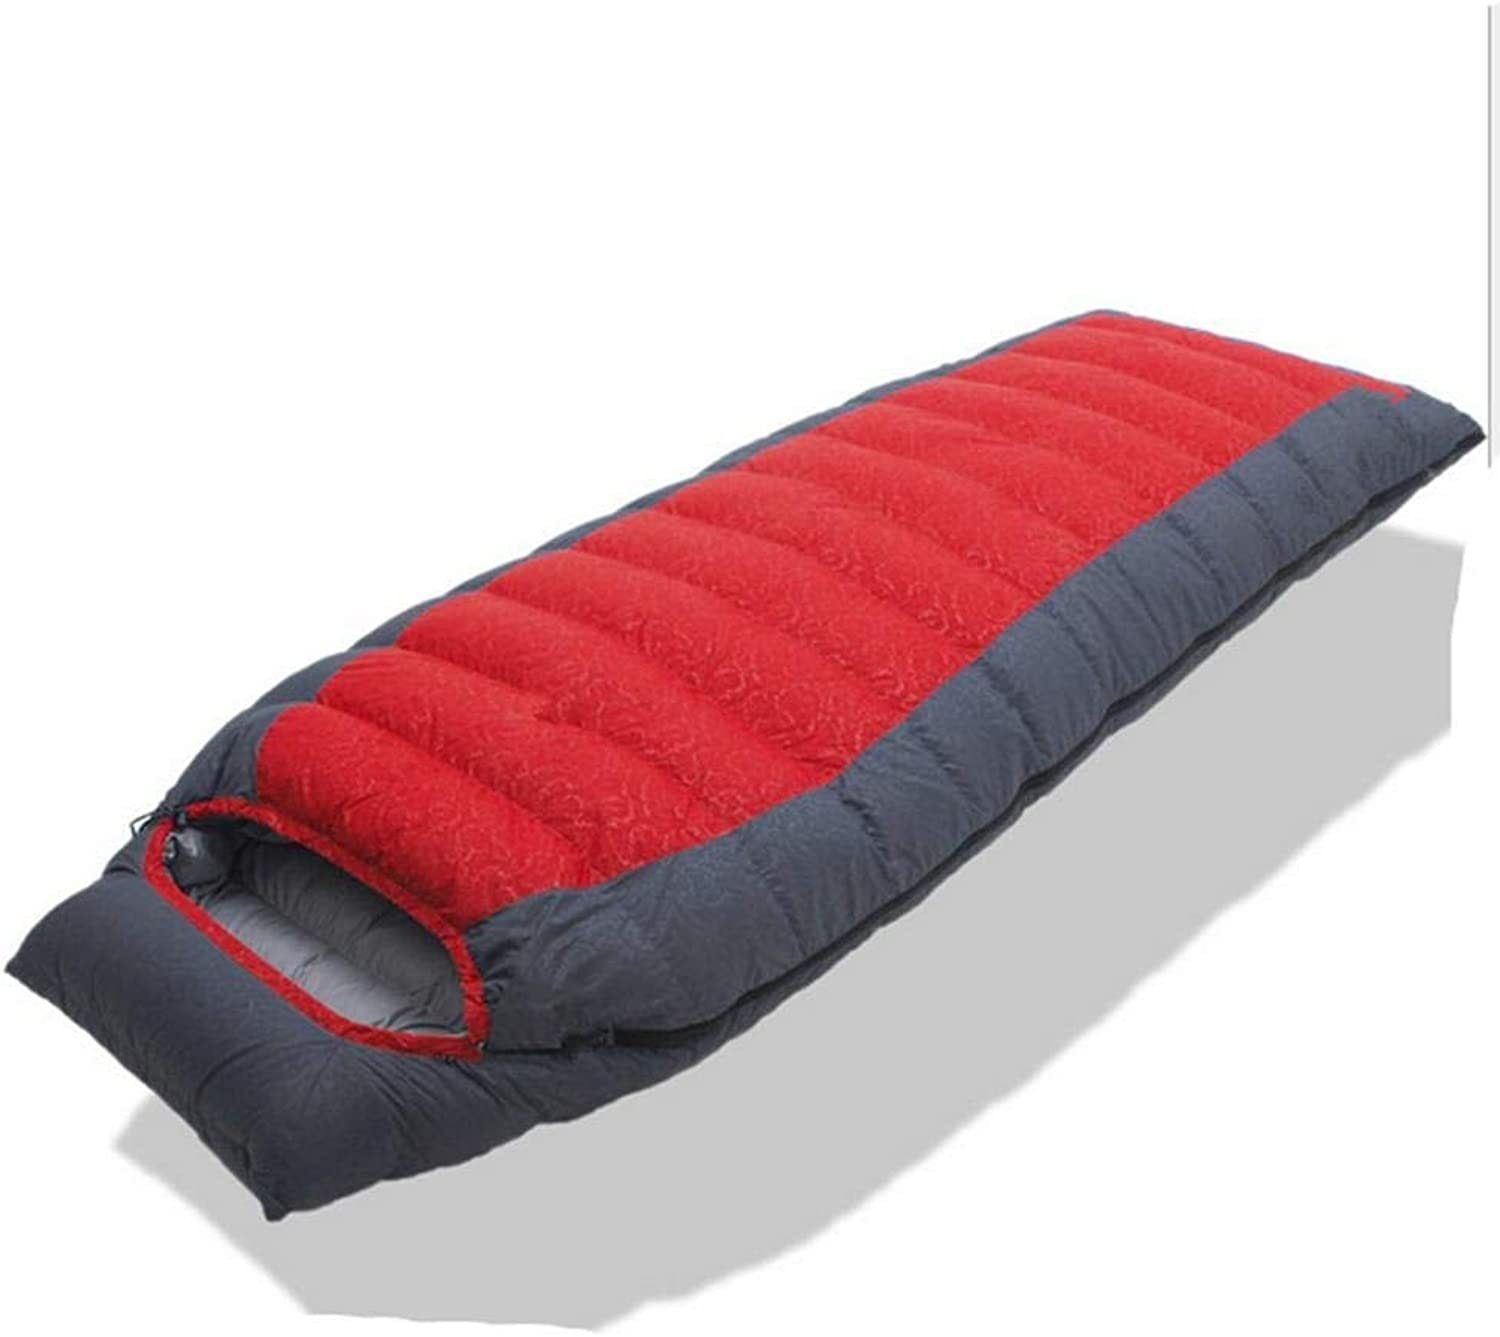 Unisex Outdoor Bag Camping Equipment Extended Sleeping Bag Durable Warmth Portable Practical Leisure Comfortable Ultralight Hiking Camping Traveling Sleeping Bag